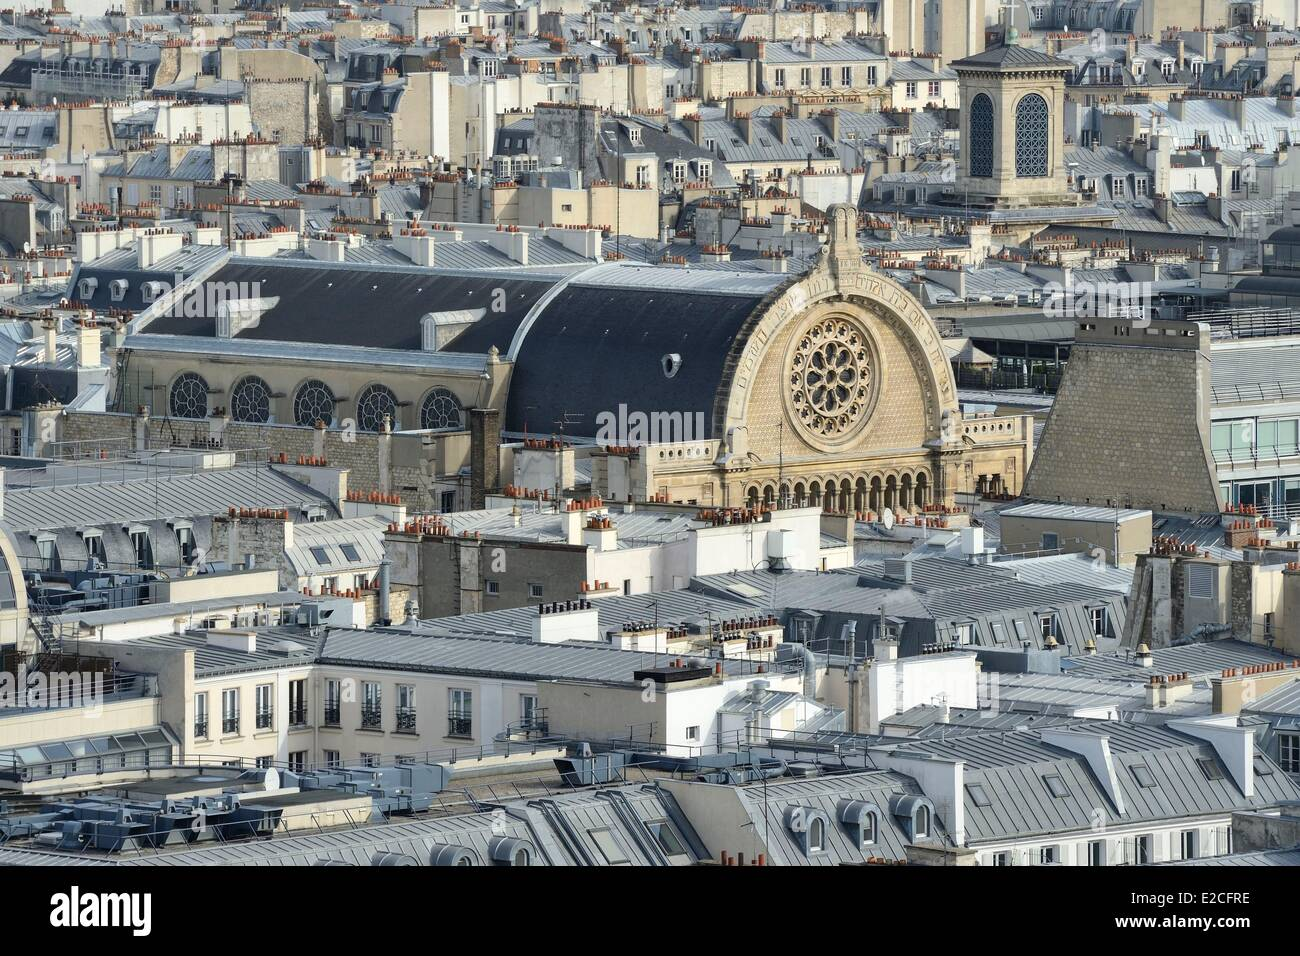 France, Paris, rue de la Victoire, Grand Synagogue of Paris - Stock Image